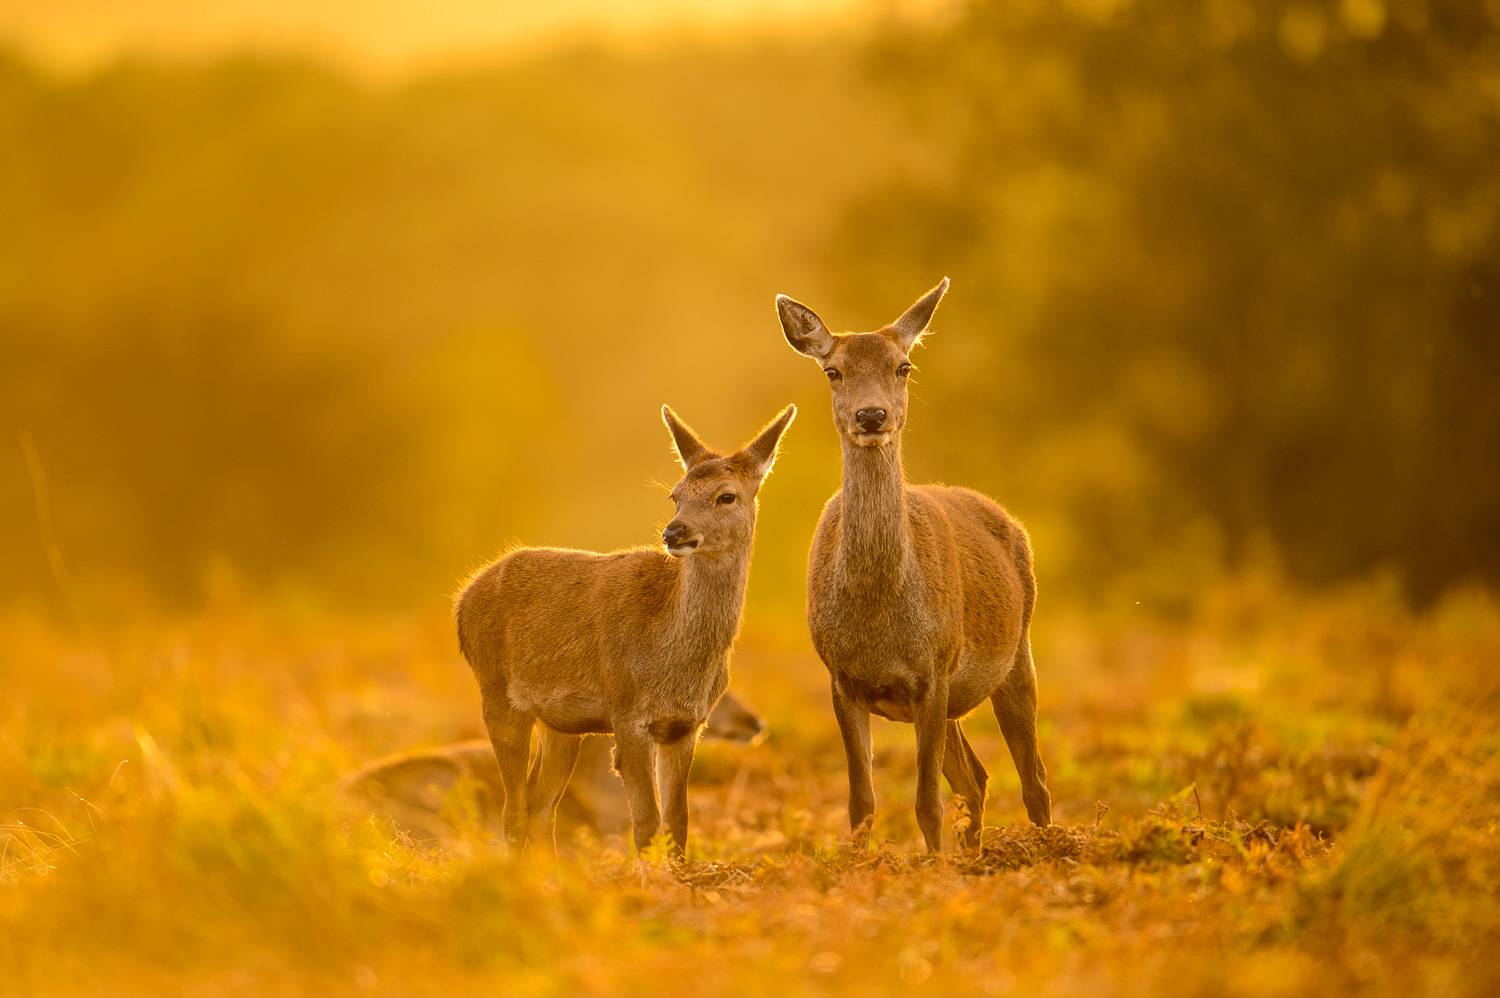 Hind and Fawn